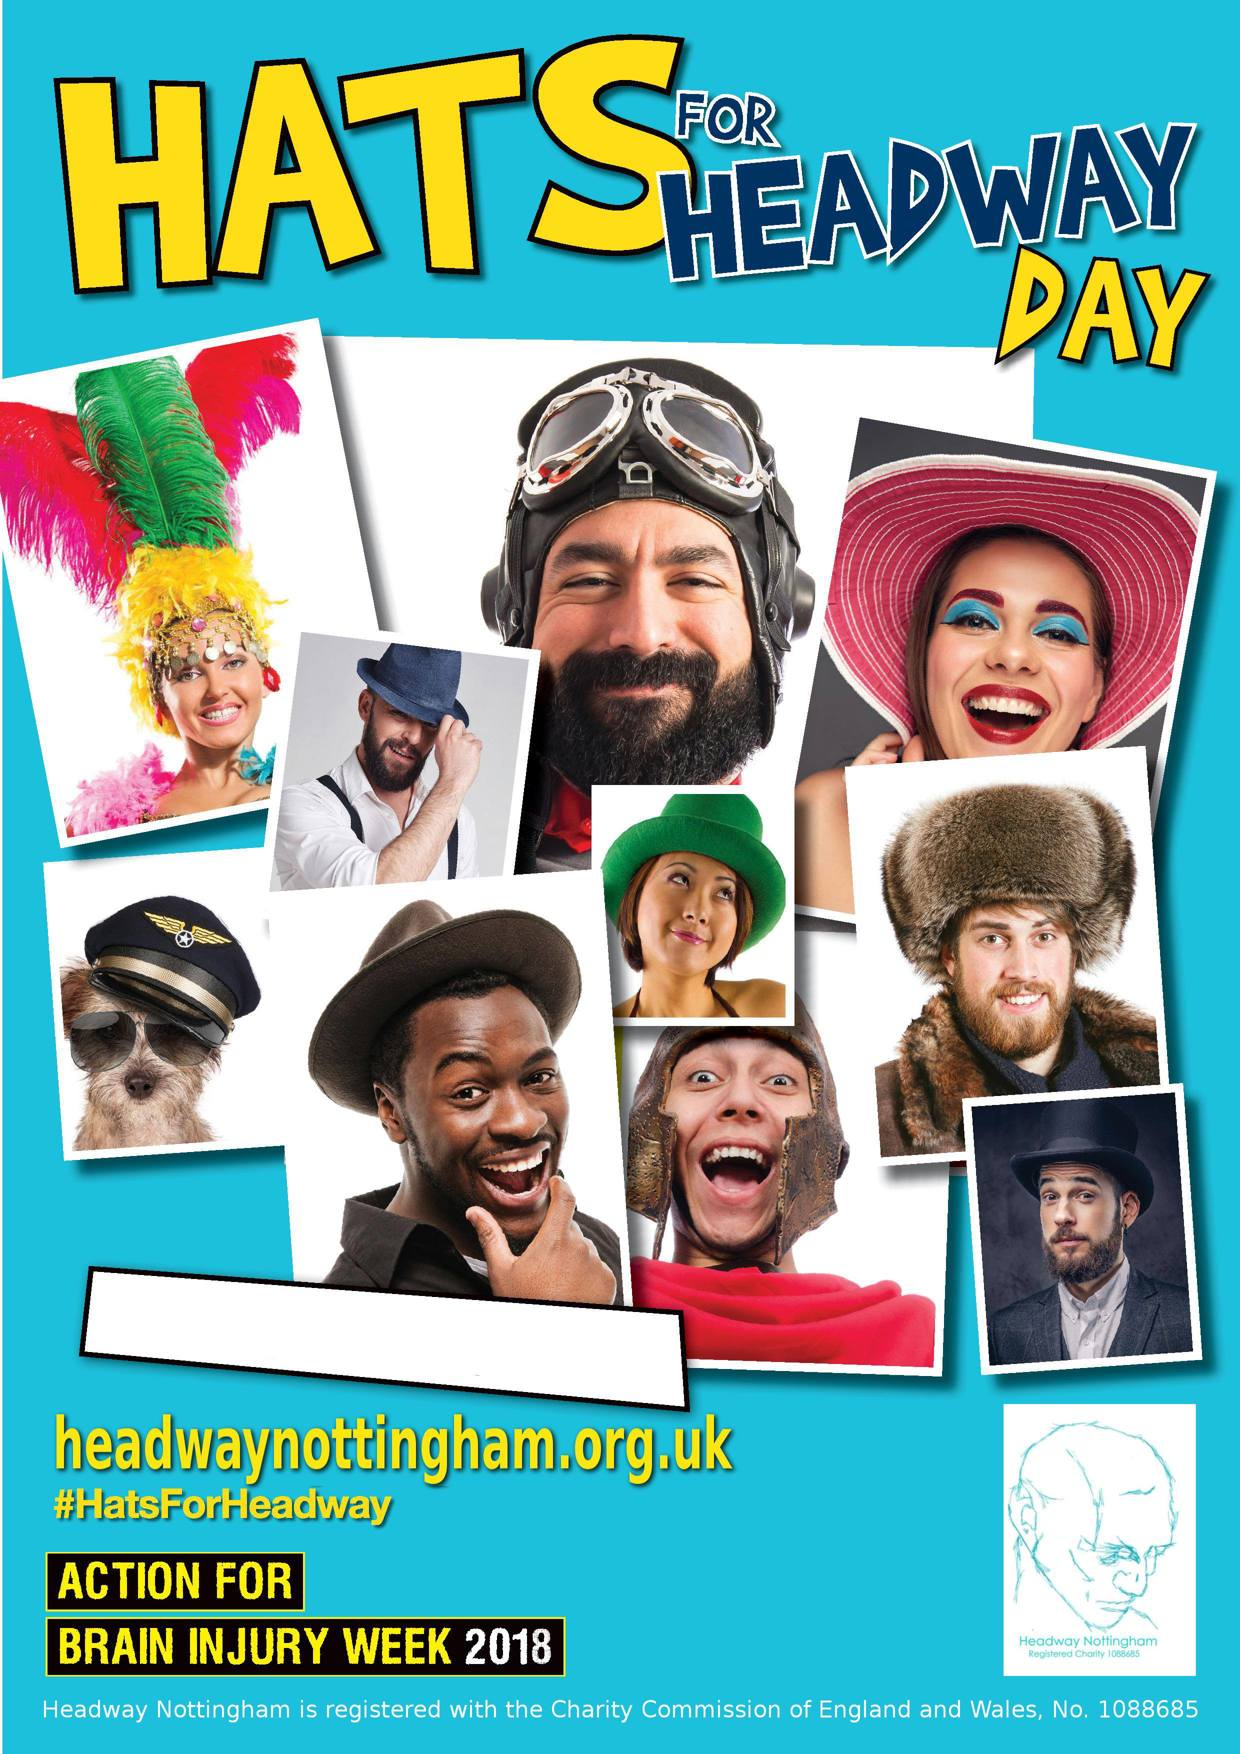 Hats for Headway Day poster - Headway Nottingham